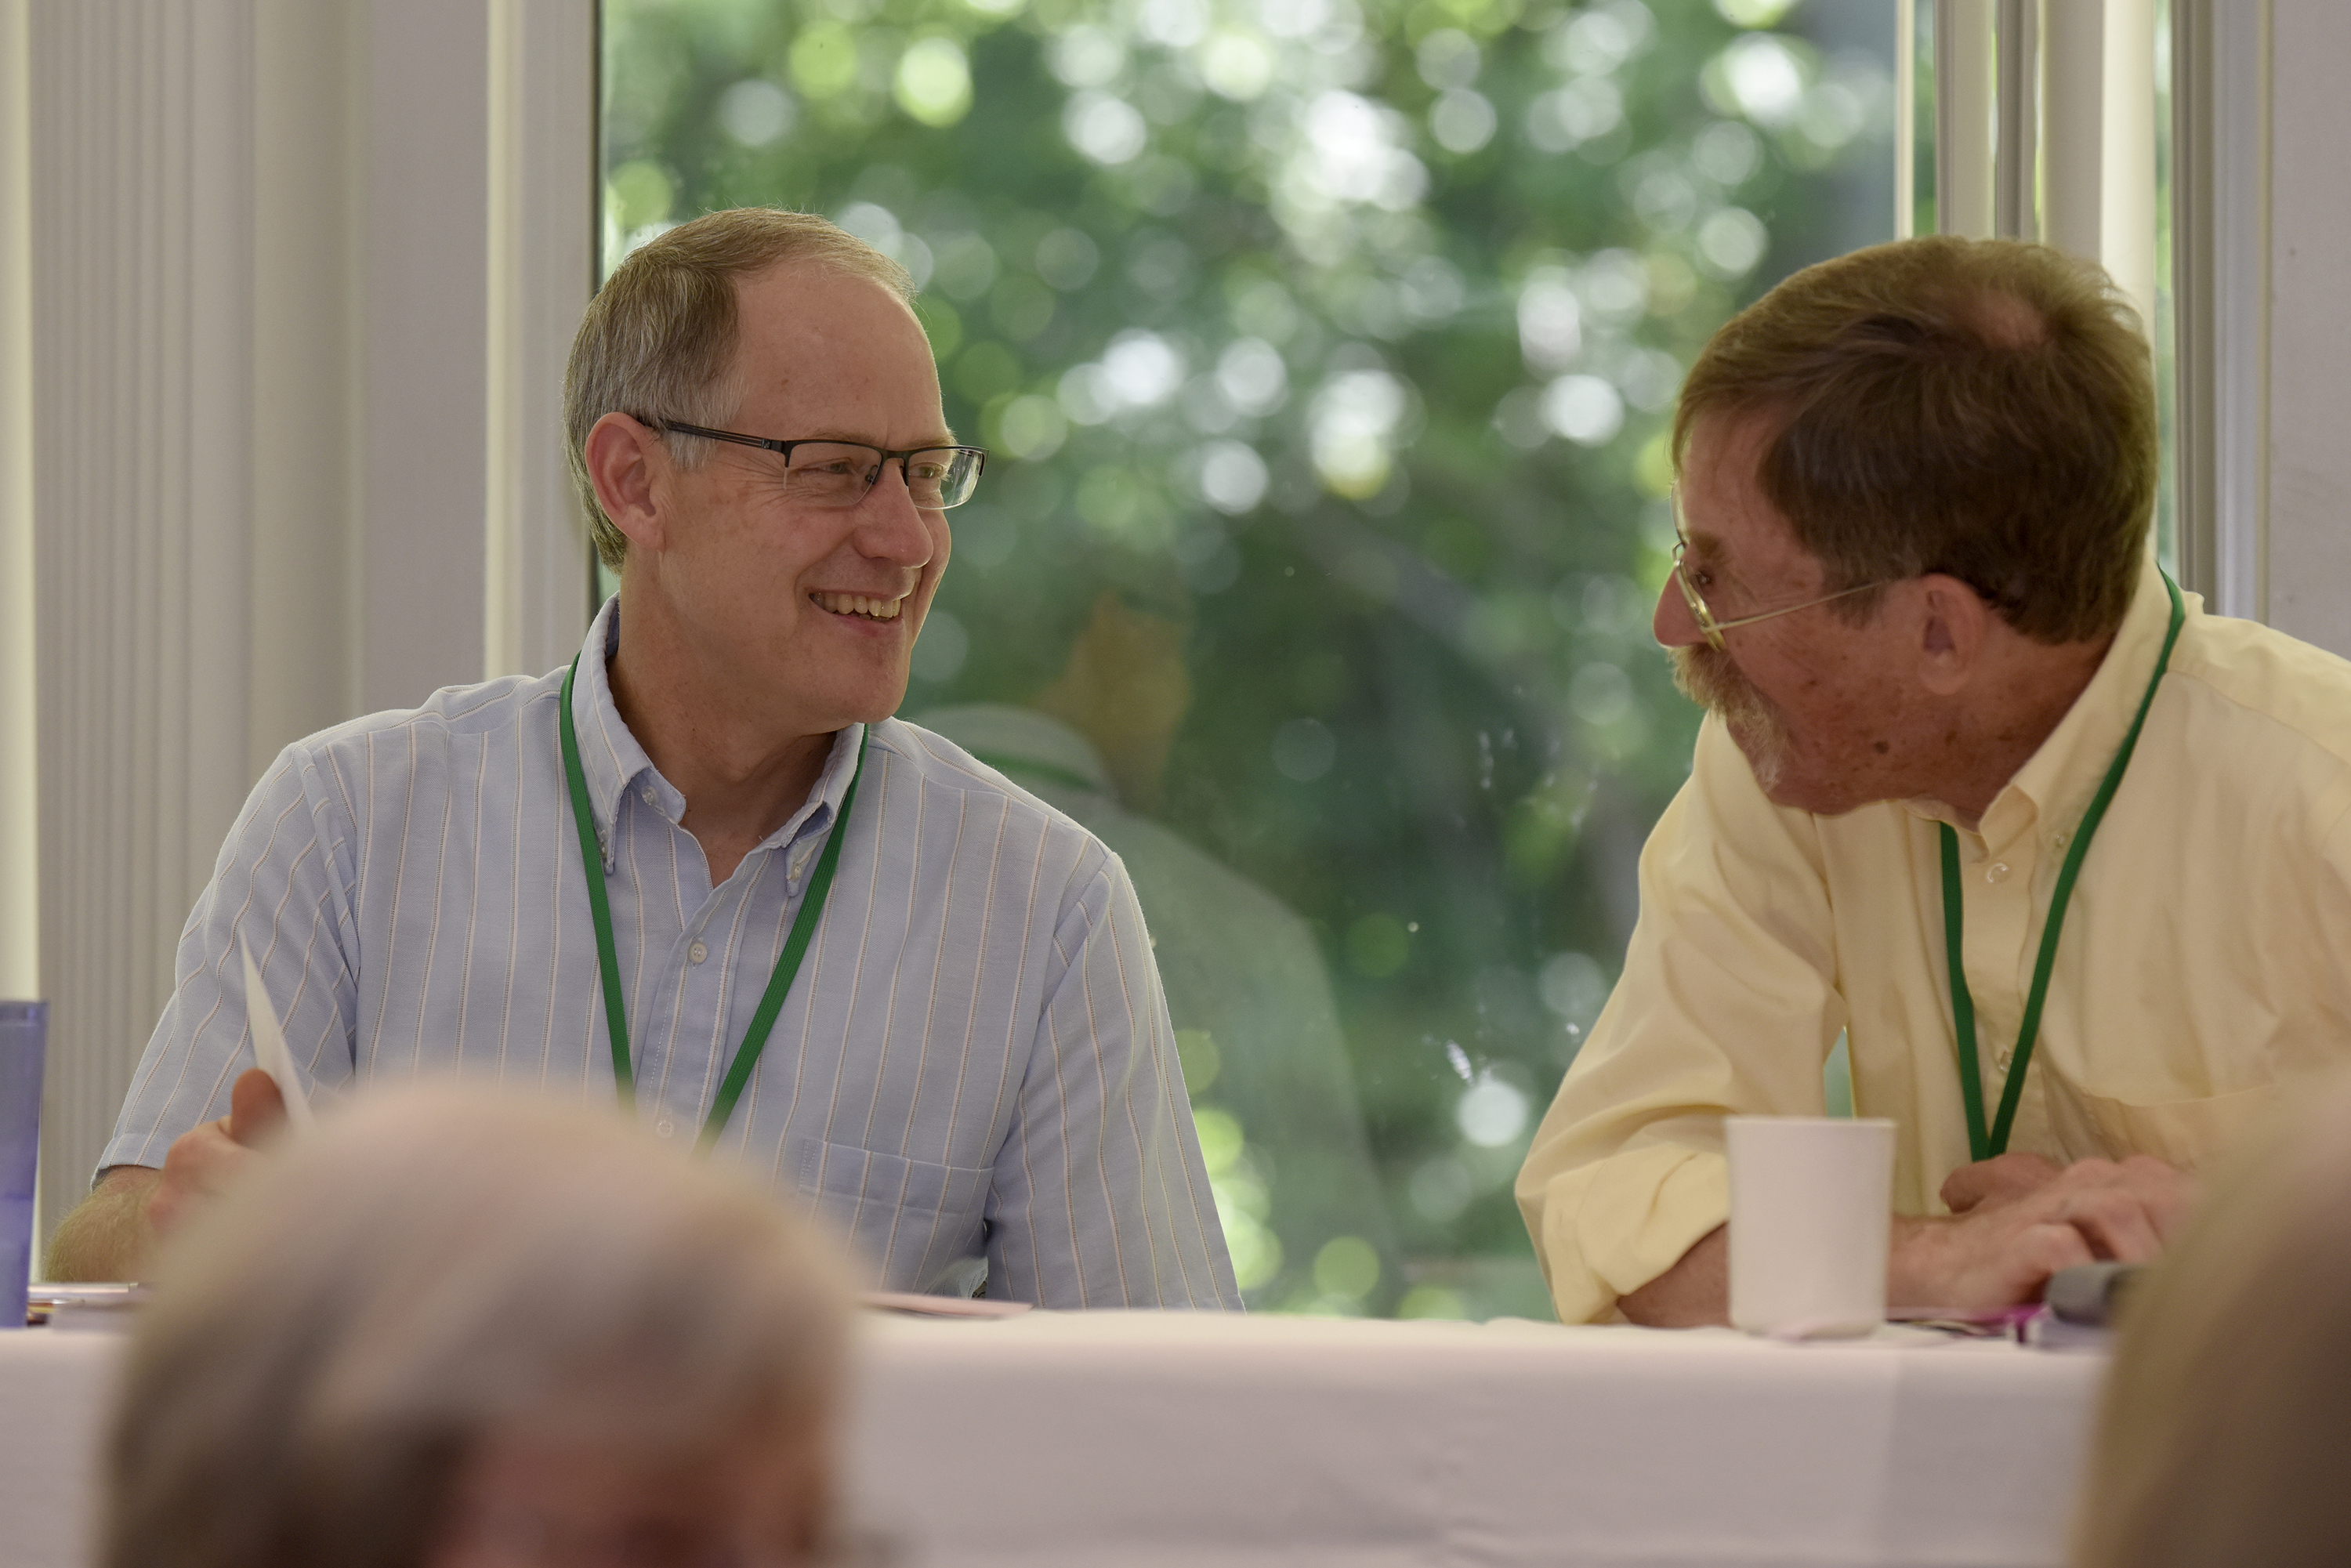 Central District conference minister Doug Luginbill (left) and Arman Habegger talk during the Saturday morning session during the Central District Conference, Friday, June 23, 2017, at Bluffton University, Bluffton, OH. Habegger is the incoming CDC president. Photograph by J. Tyler Klassen